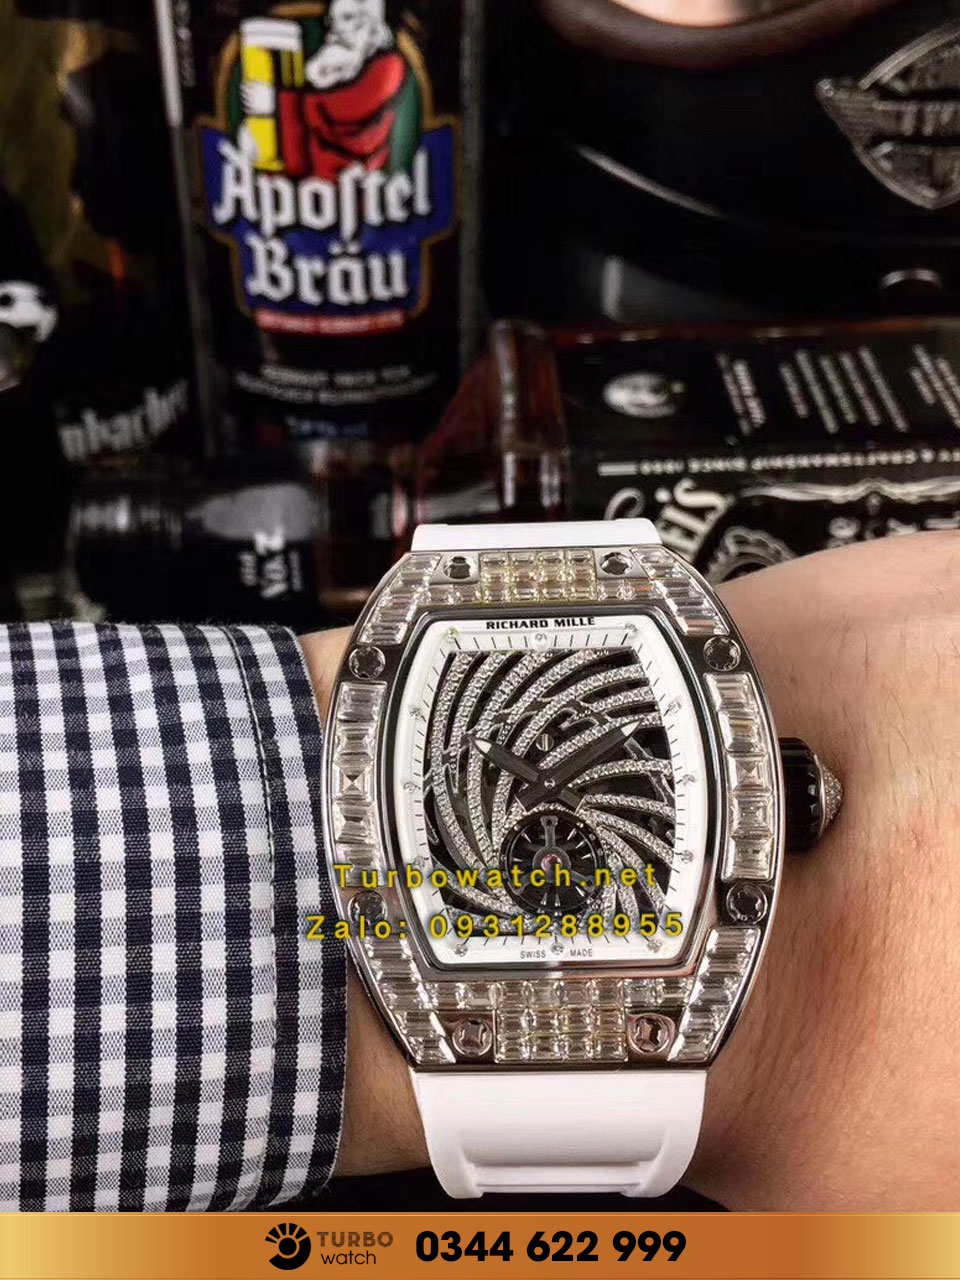 RICHARD MILLE Richard Mille RM 051-02 Tourbillon Diamond Twister Pavé FAKE 1-1 SIÊU CẤP